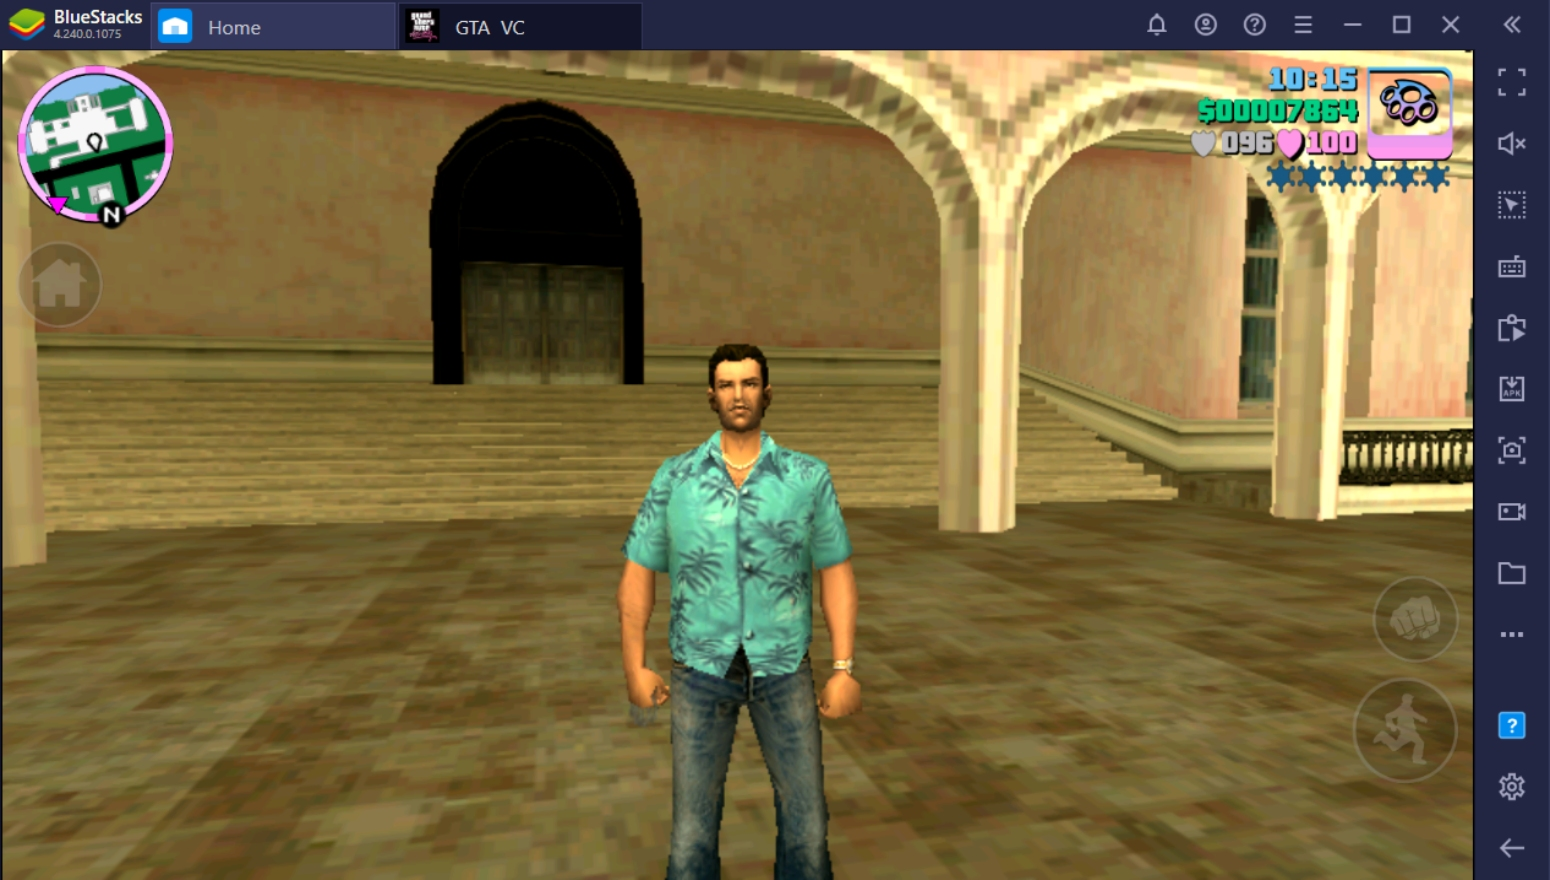 How To Play GTA Vice City On PC With BlueStacks